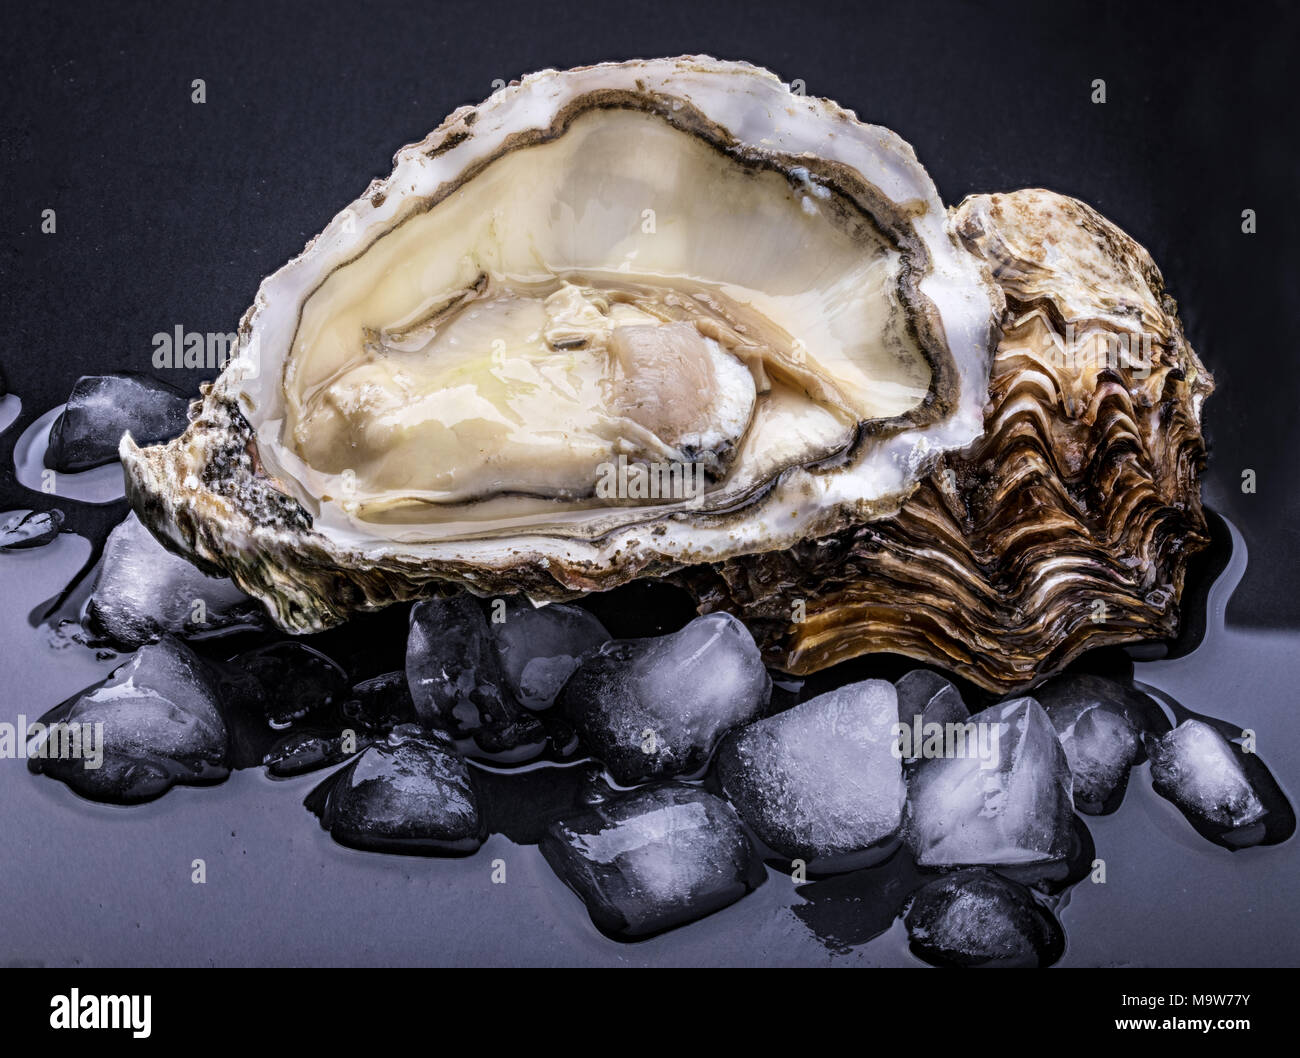 Fresh oyster isolated with shadow on dark background. Clipping path. - Stock Image